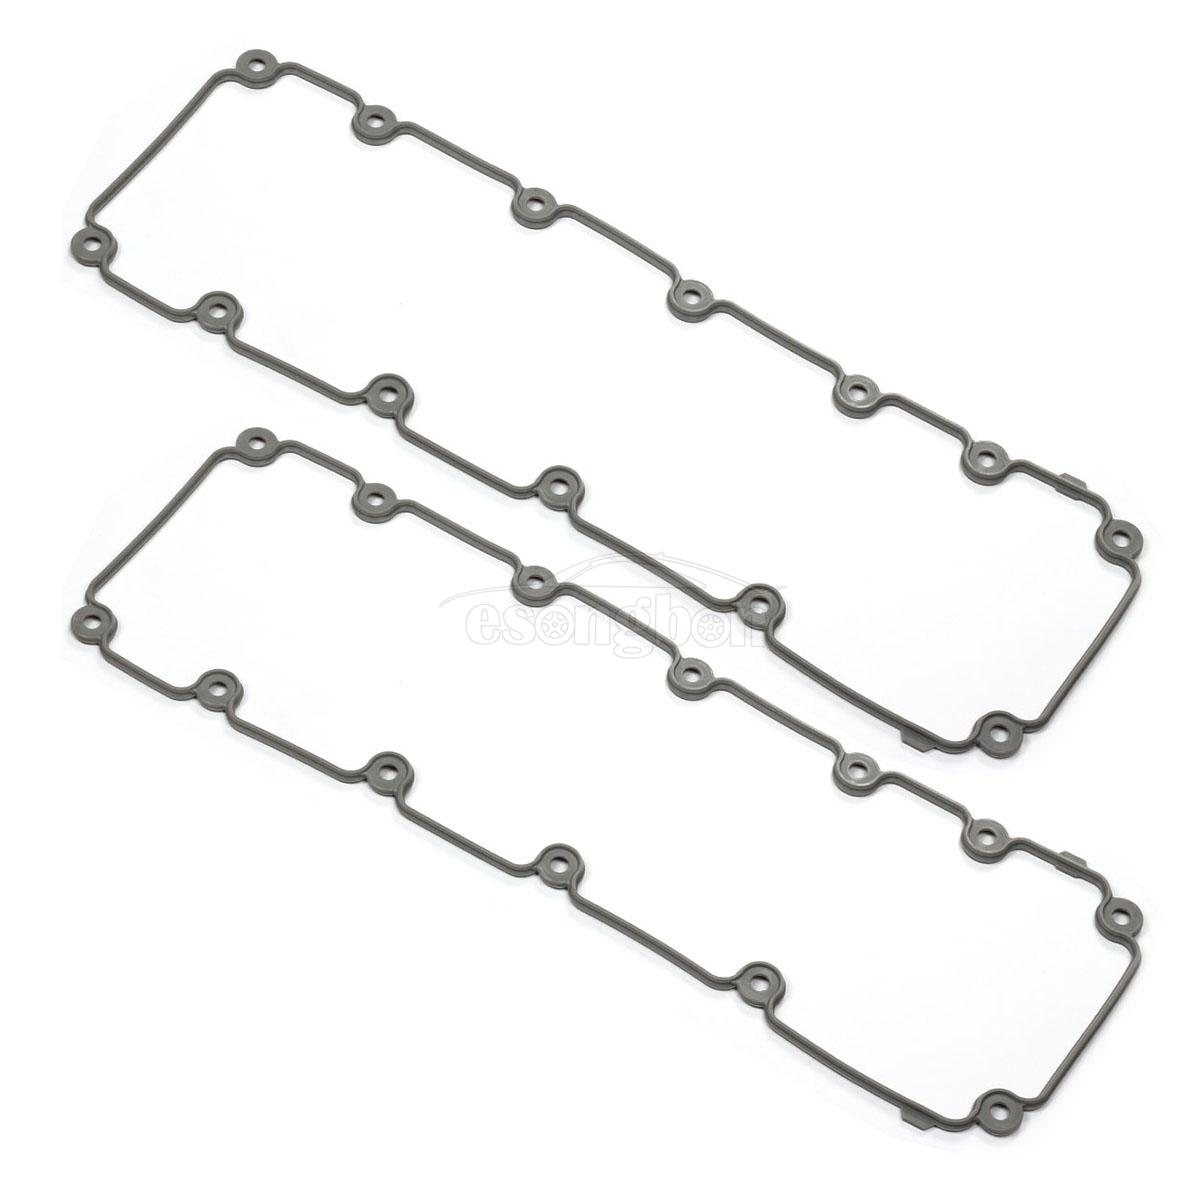 For Ford For Lincoln For Mercury 96 04 Valve Cover Gasket